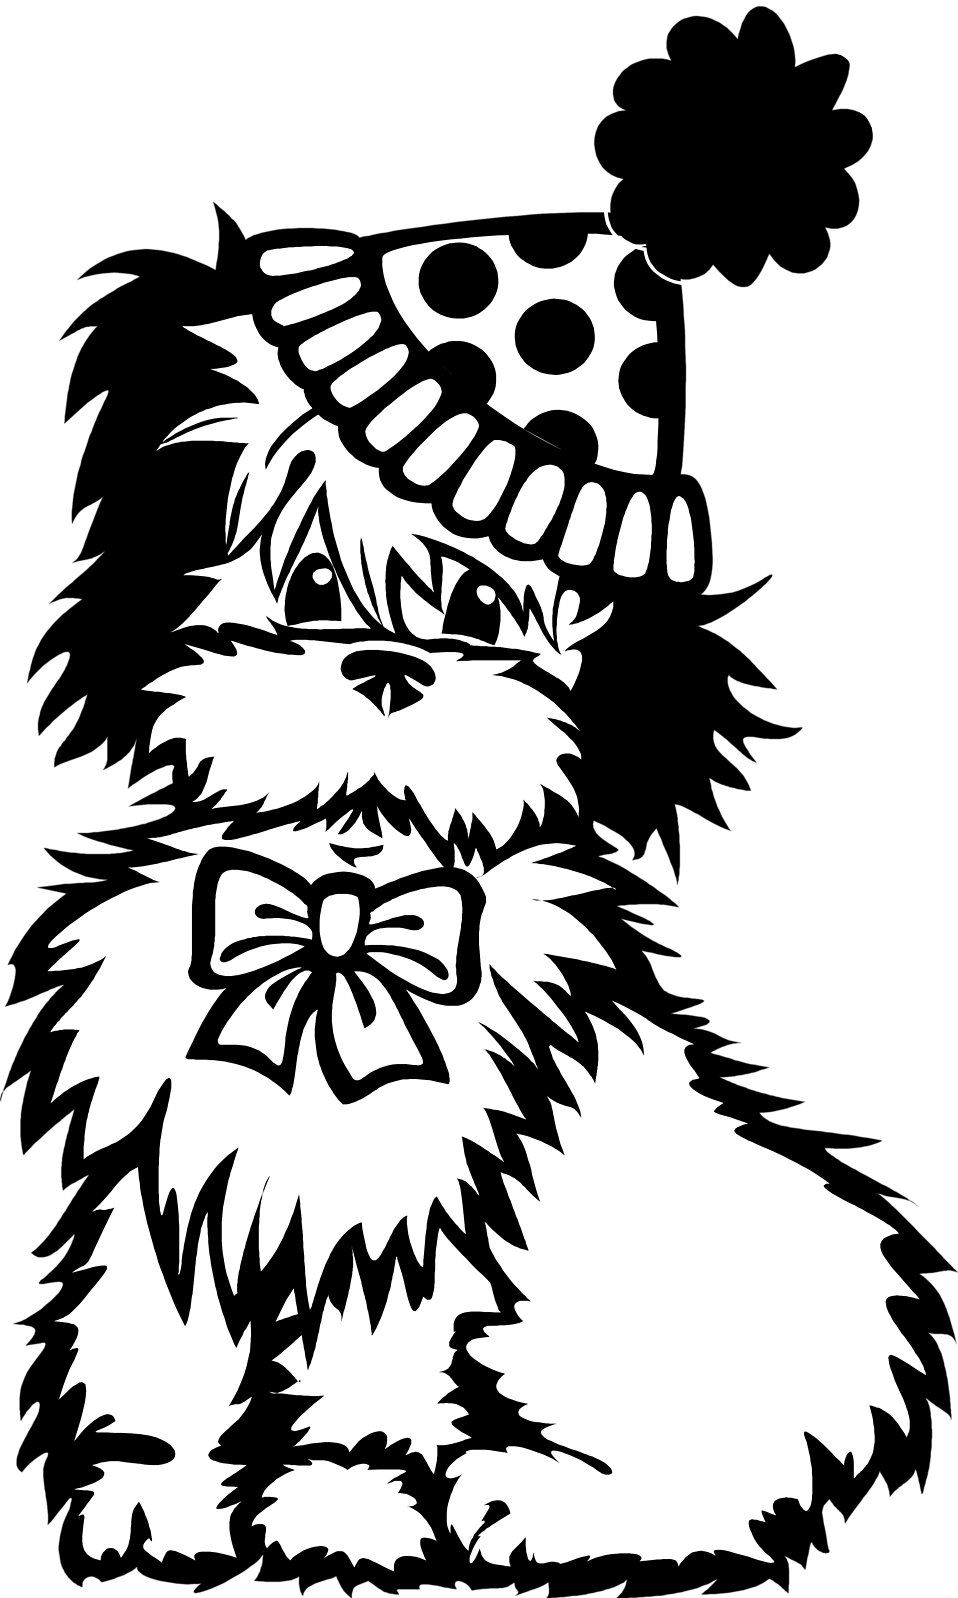 Pet clipart black and white. Dog free stock photo